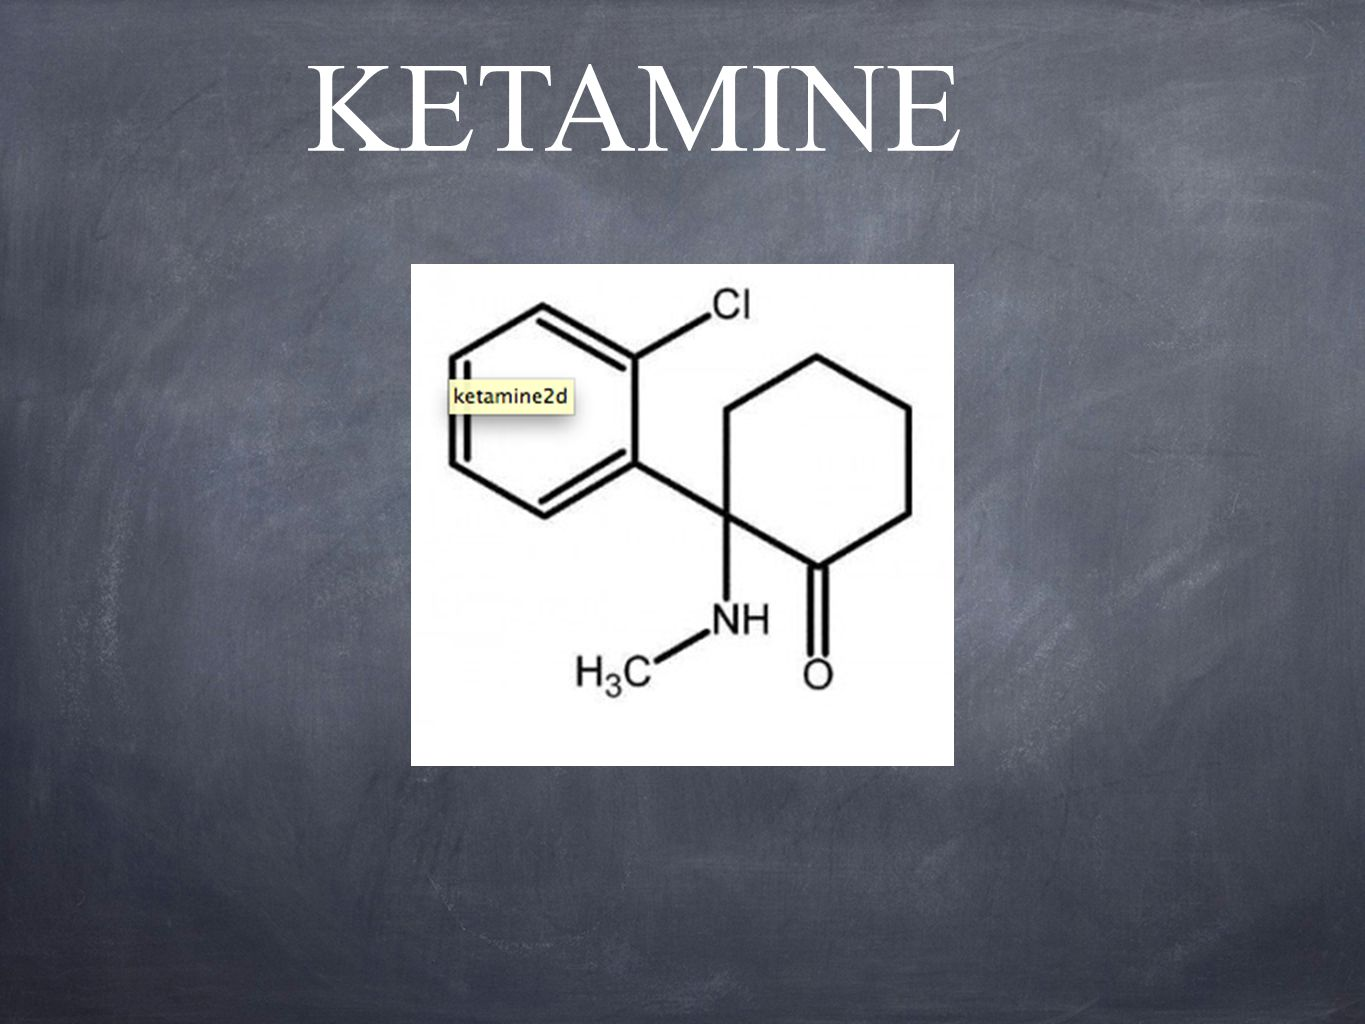 Ketamine as Adjunctive Analgesic to Opioids and Post-Operative Analgesia Himmelseher and Durieux (2005) highlighted several studies that utilized the effects of a subanesthetic dose of intravenous ketamine as an analgesia adjunct to general anesthesia.